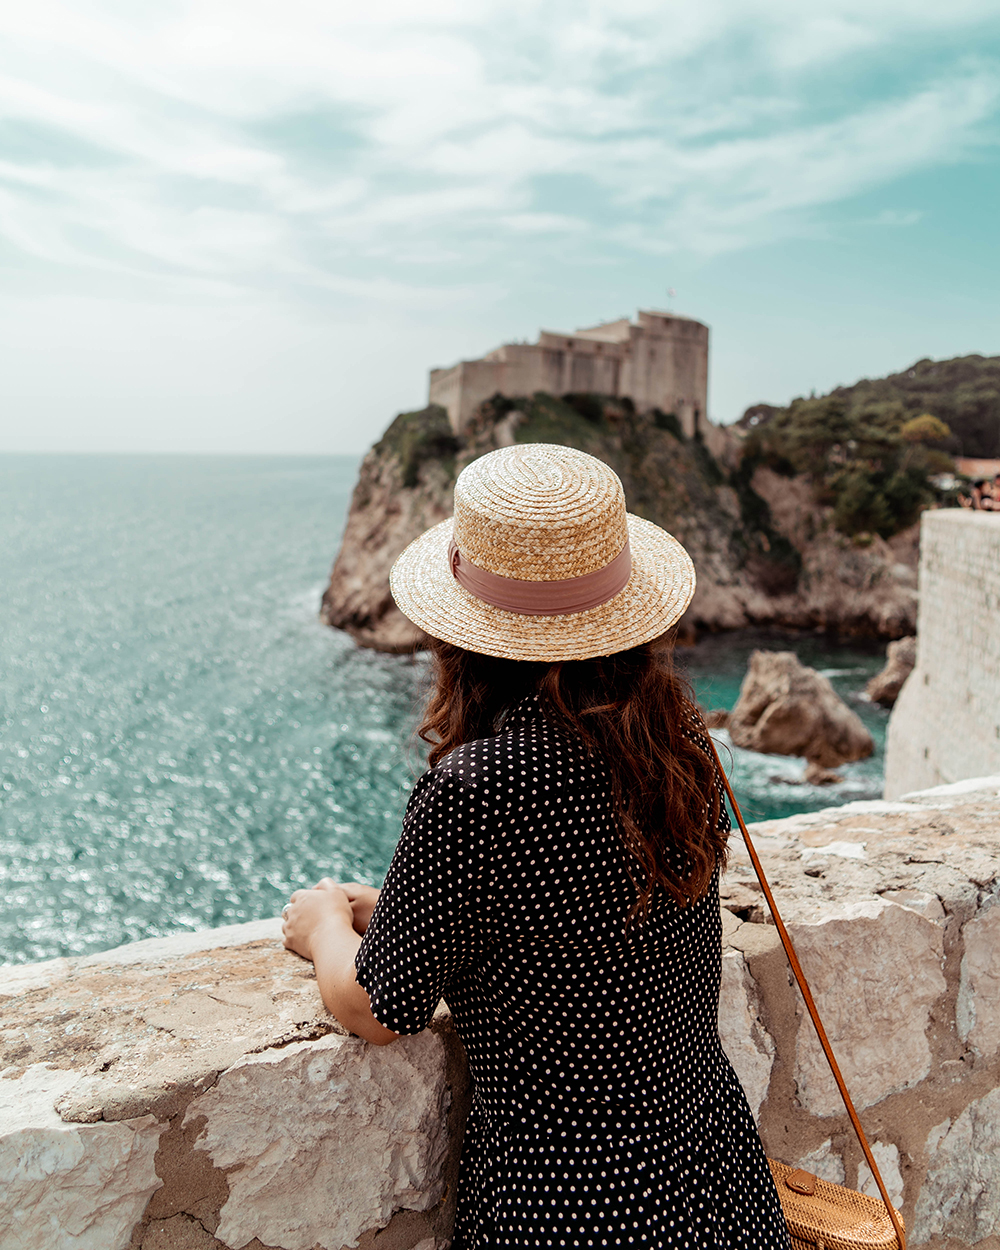 Postcards from Hawaii, Croatia, Dubrovnik, Game of Thrones, Self guided tour